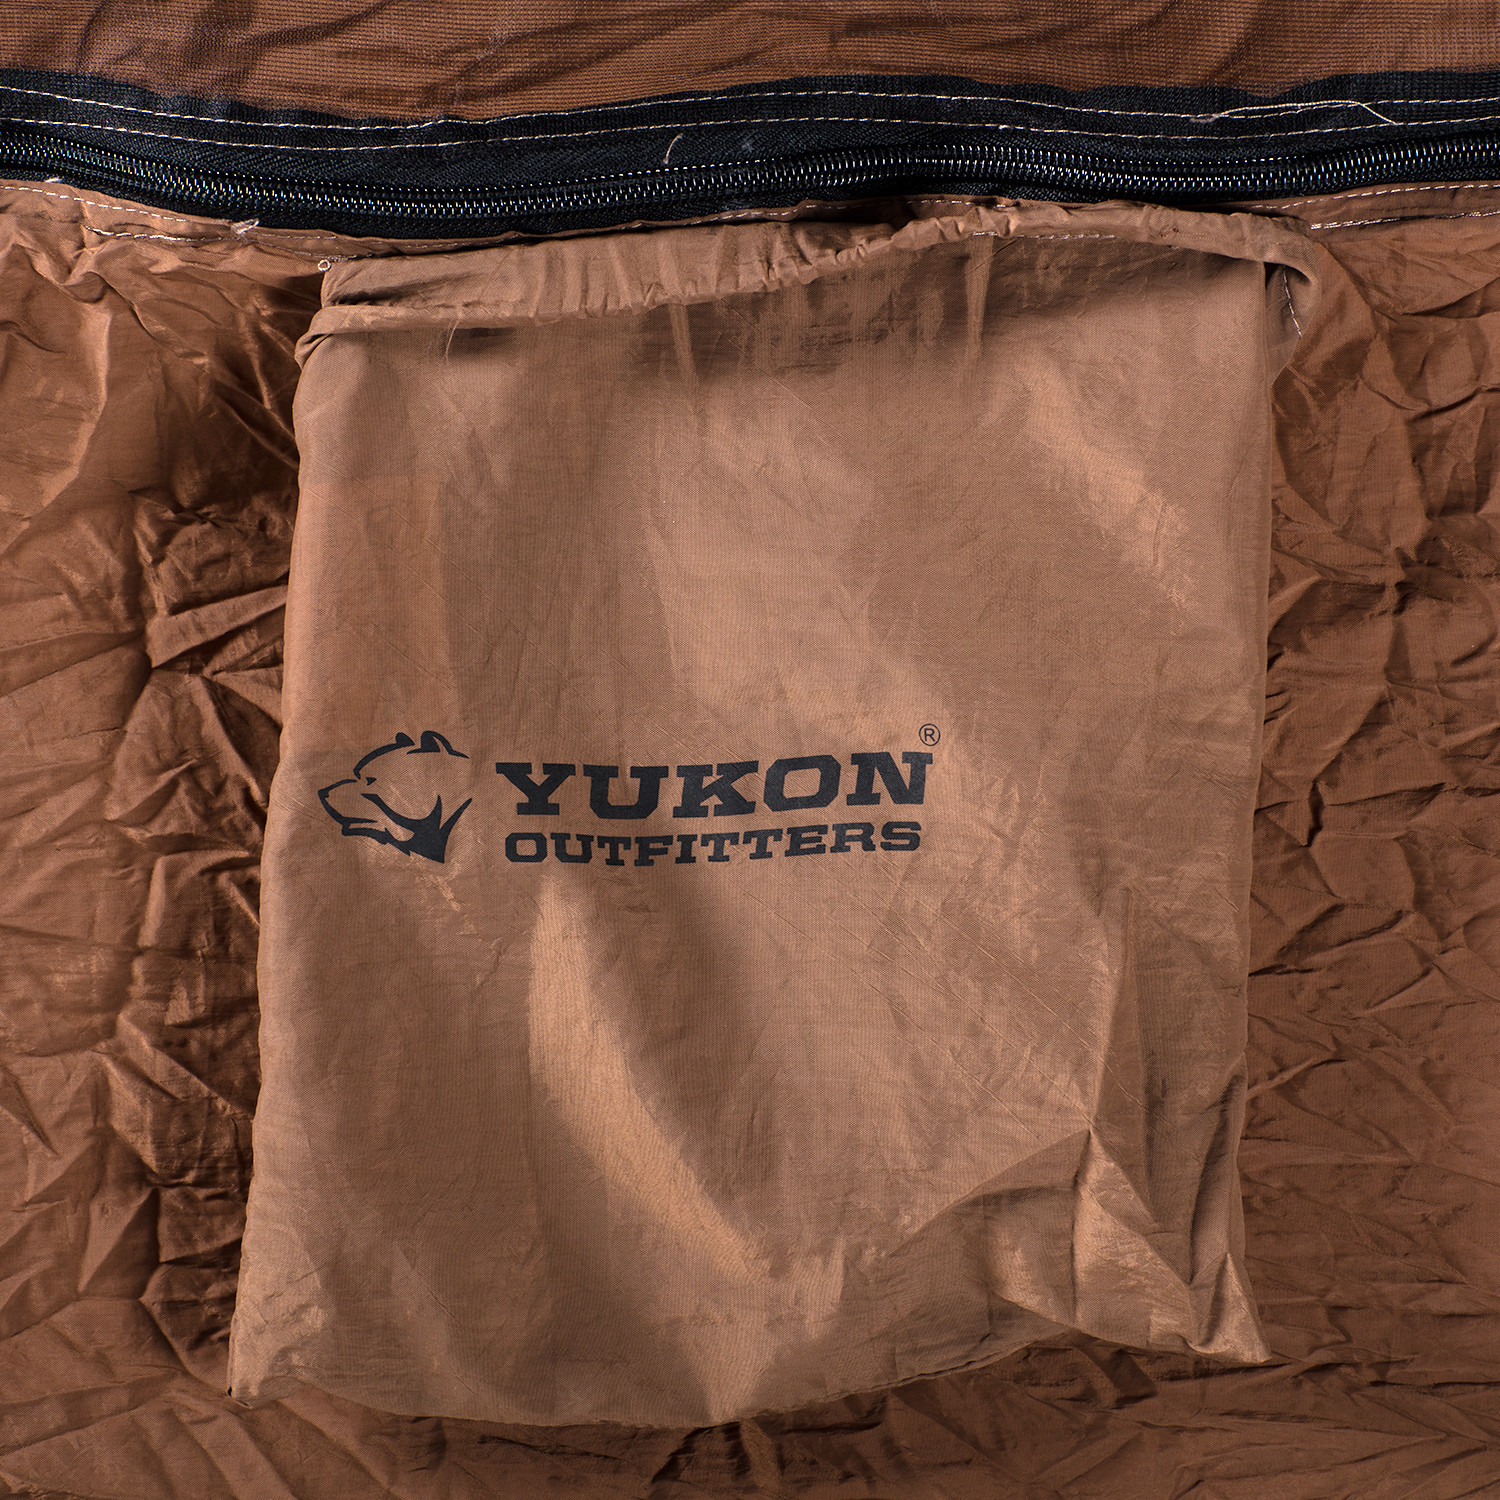 XL Mosquito Hammock (Earth Brown) - Yukon Outfitters ...